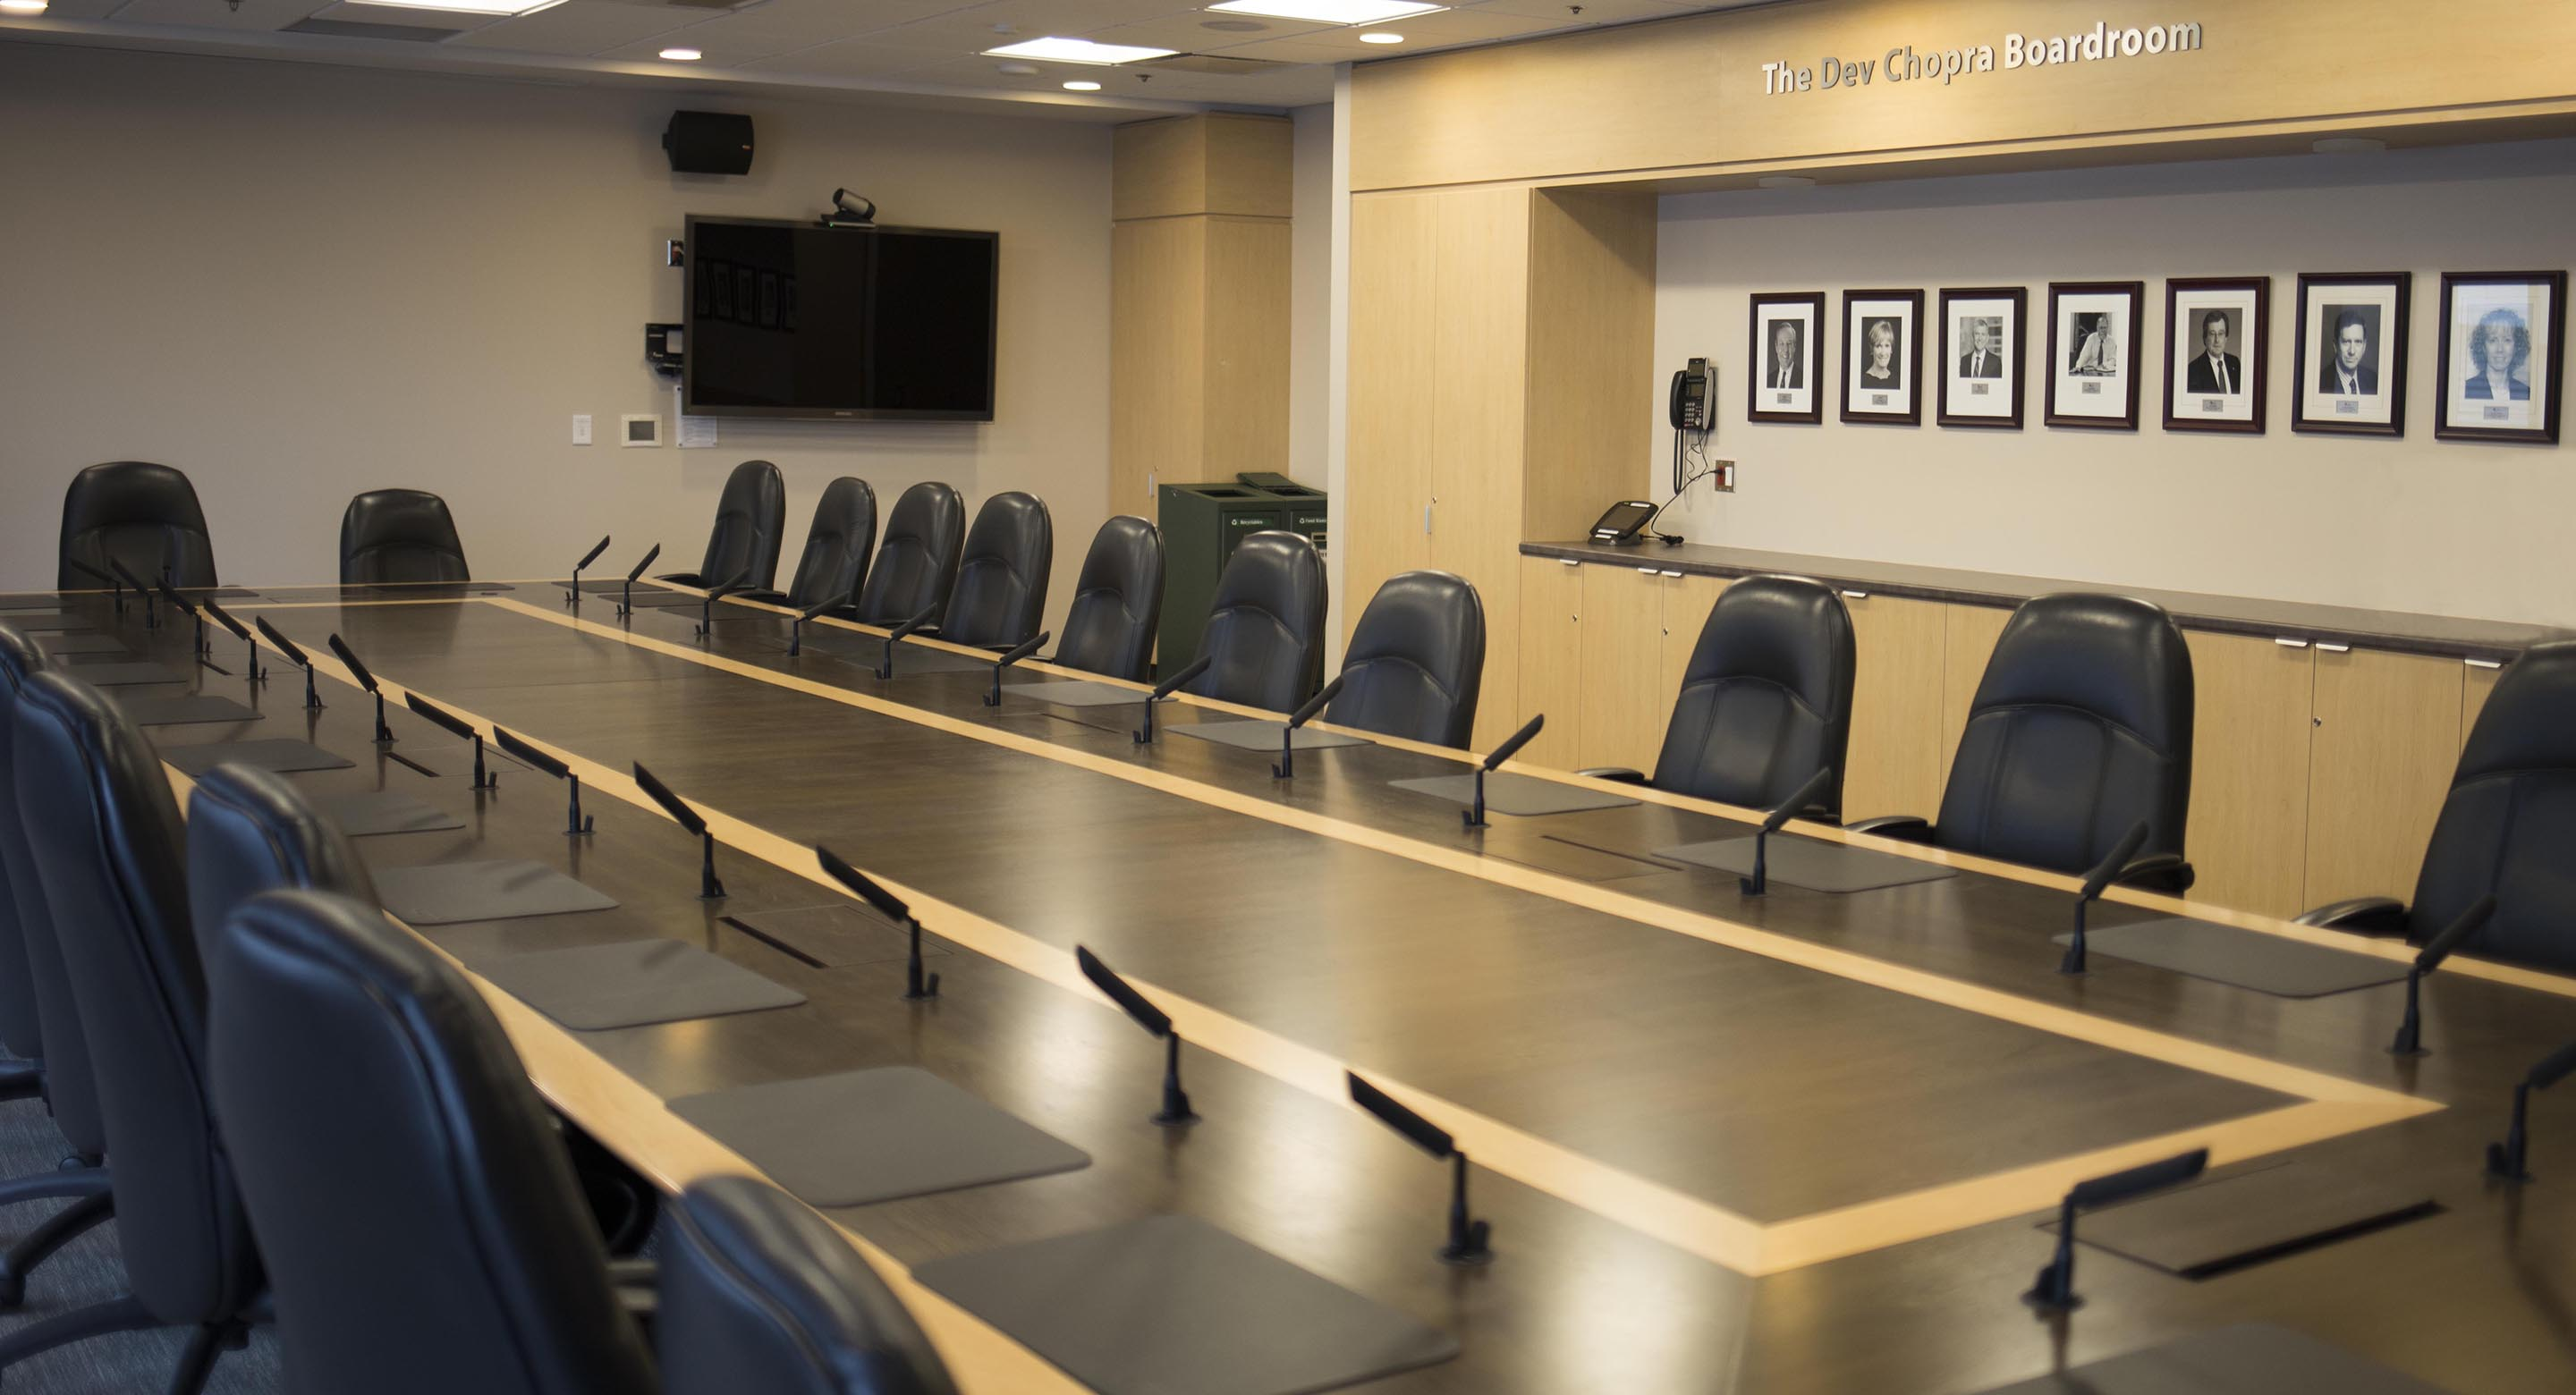 Committees and board meetings take place in the CAMH executive boardroom.